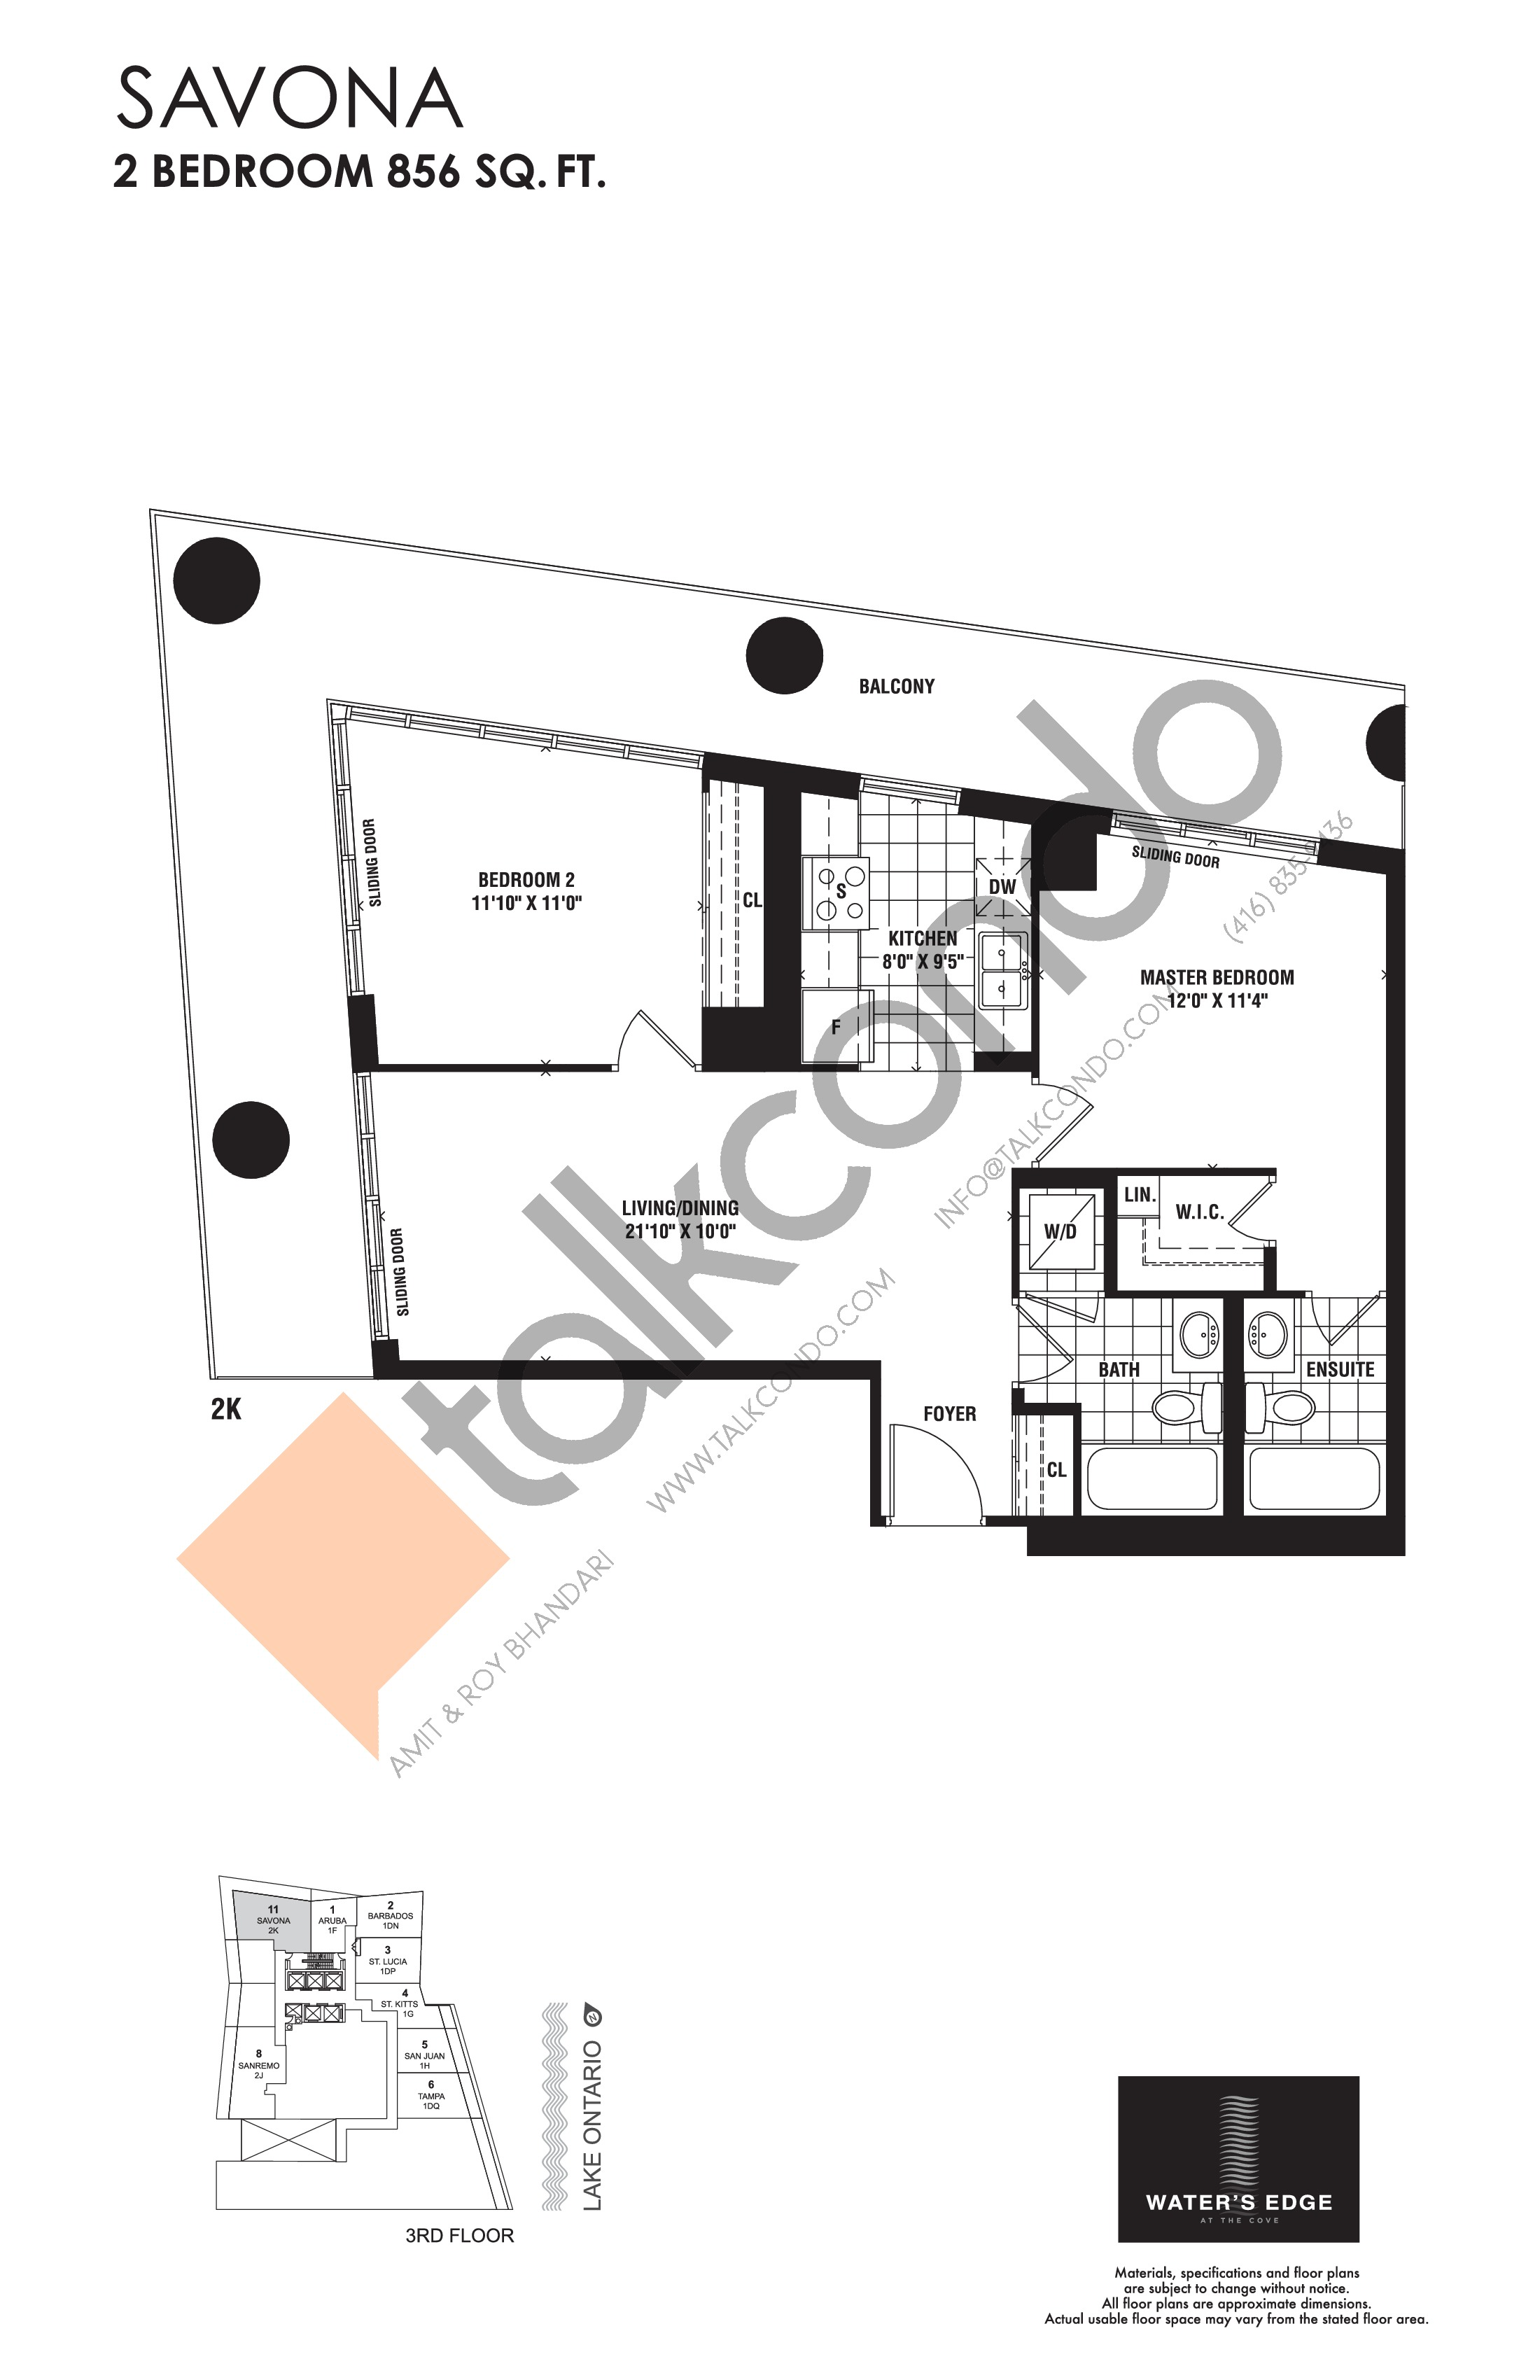 Savona Floor Plan at Water's Edge at the Cove Condos - 856 sq.ft